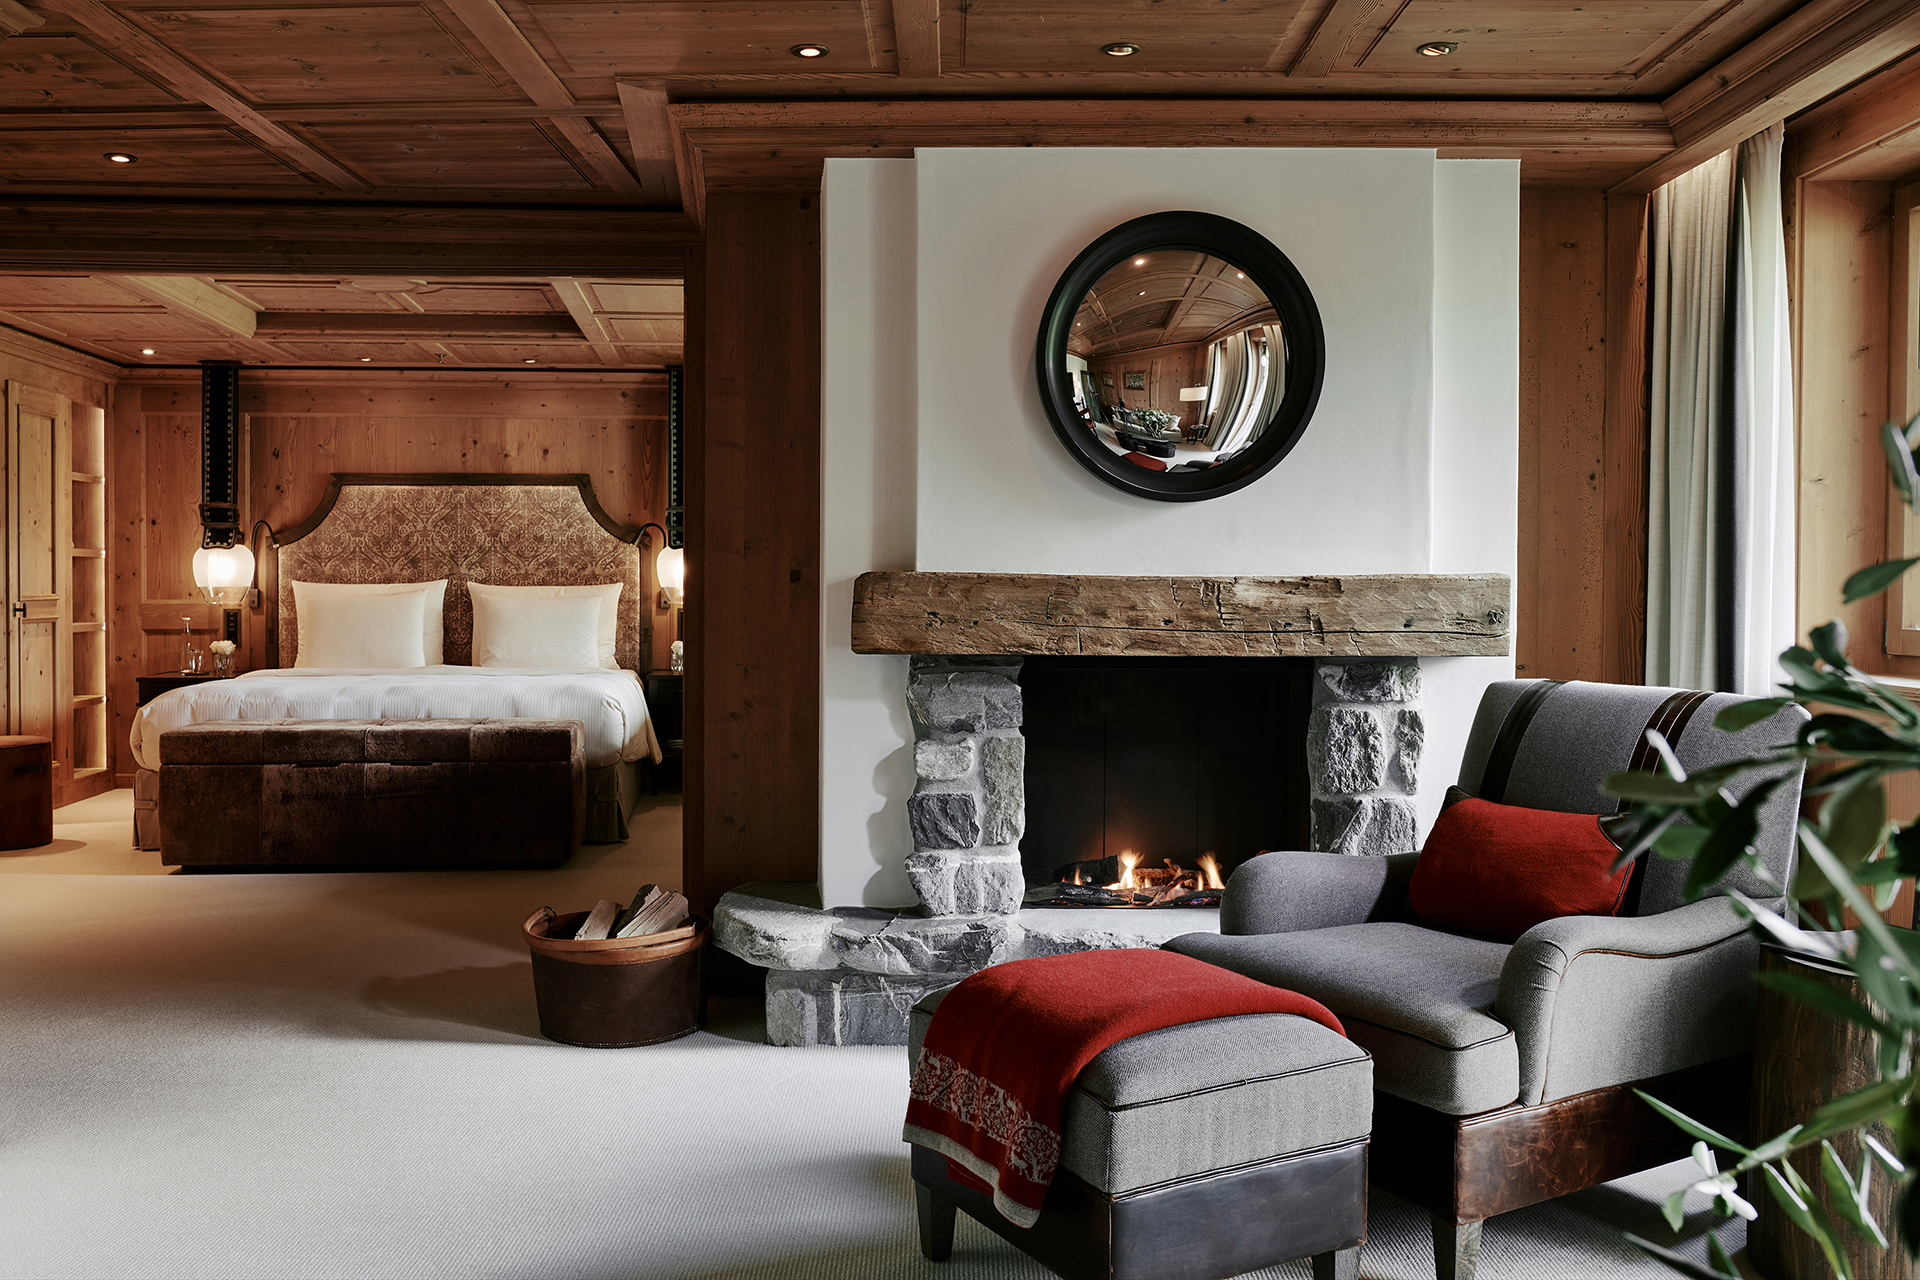 TheAlpinaGstaad_Rooms&Suites_0036_1920.jpg